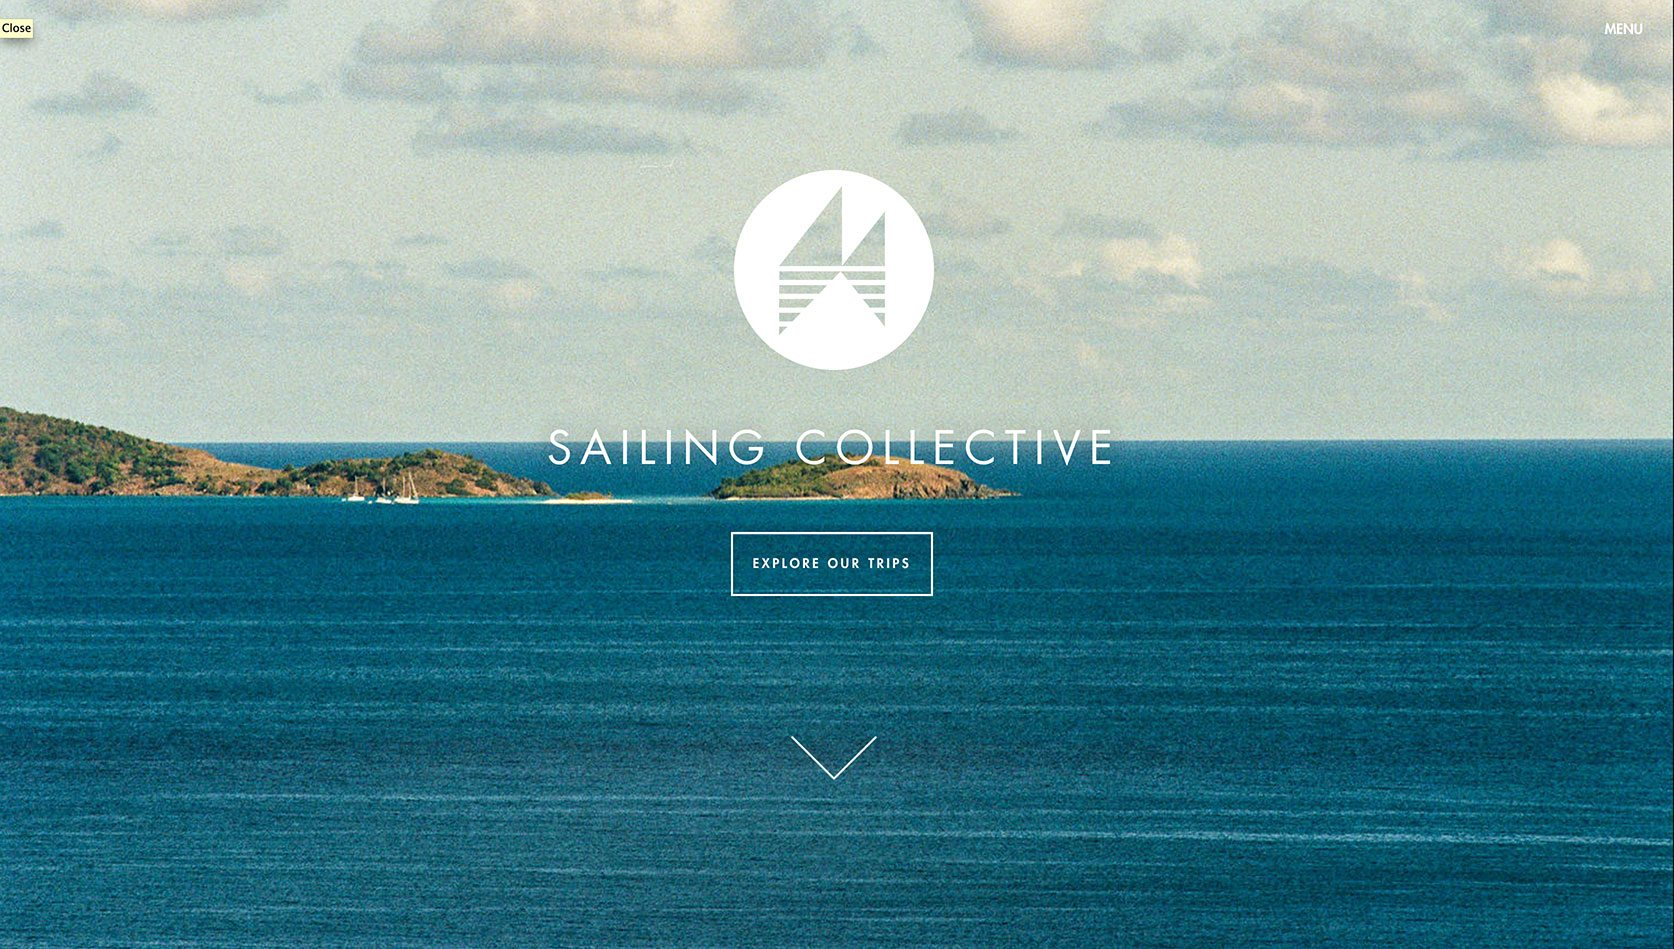 Sailing-Collective